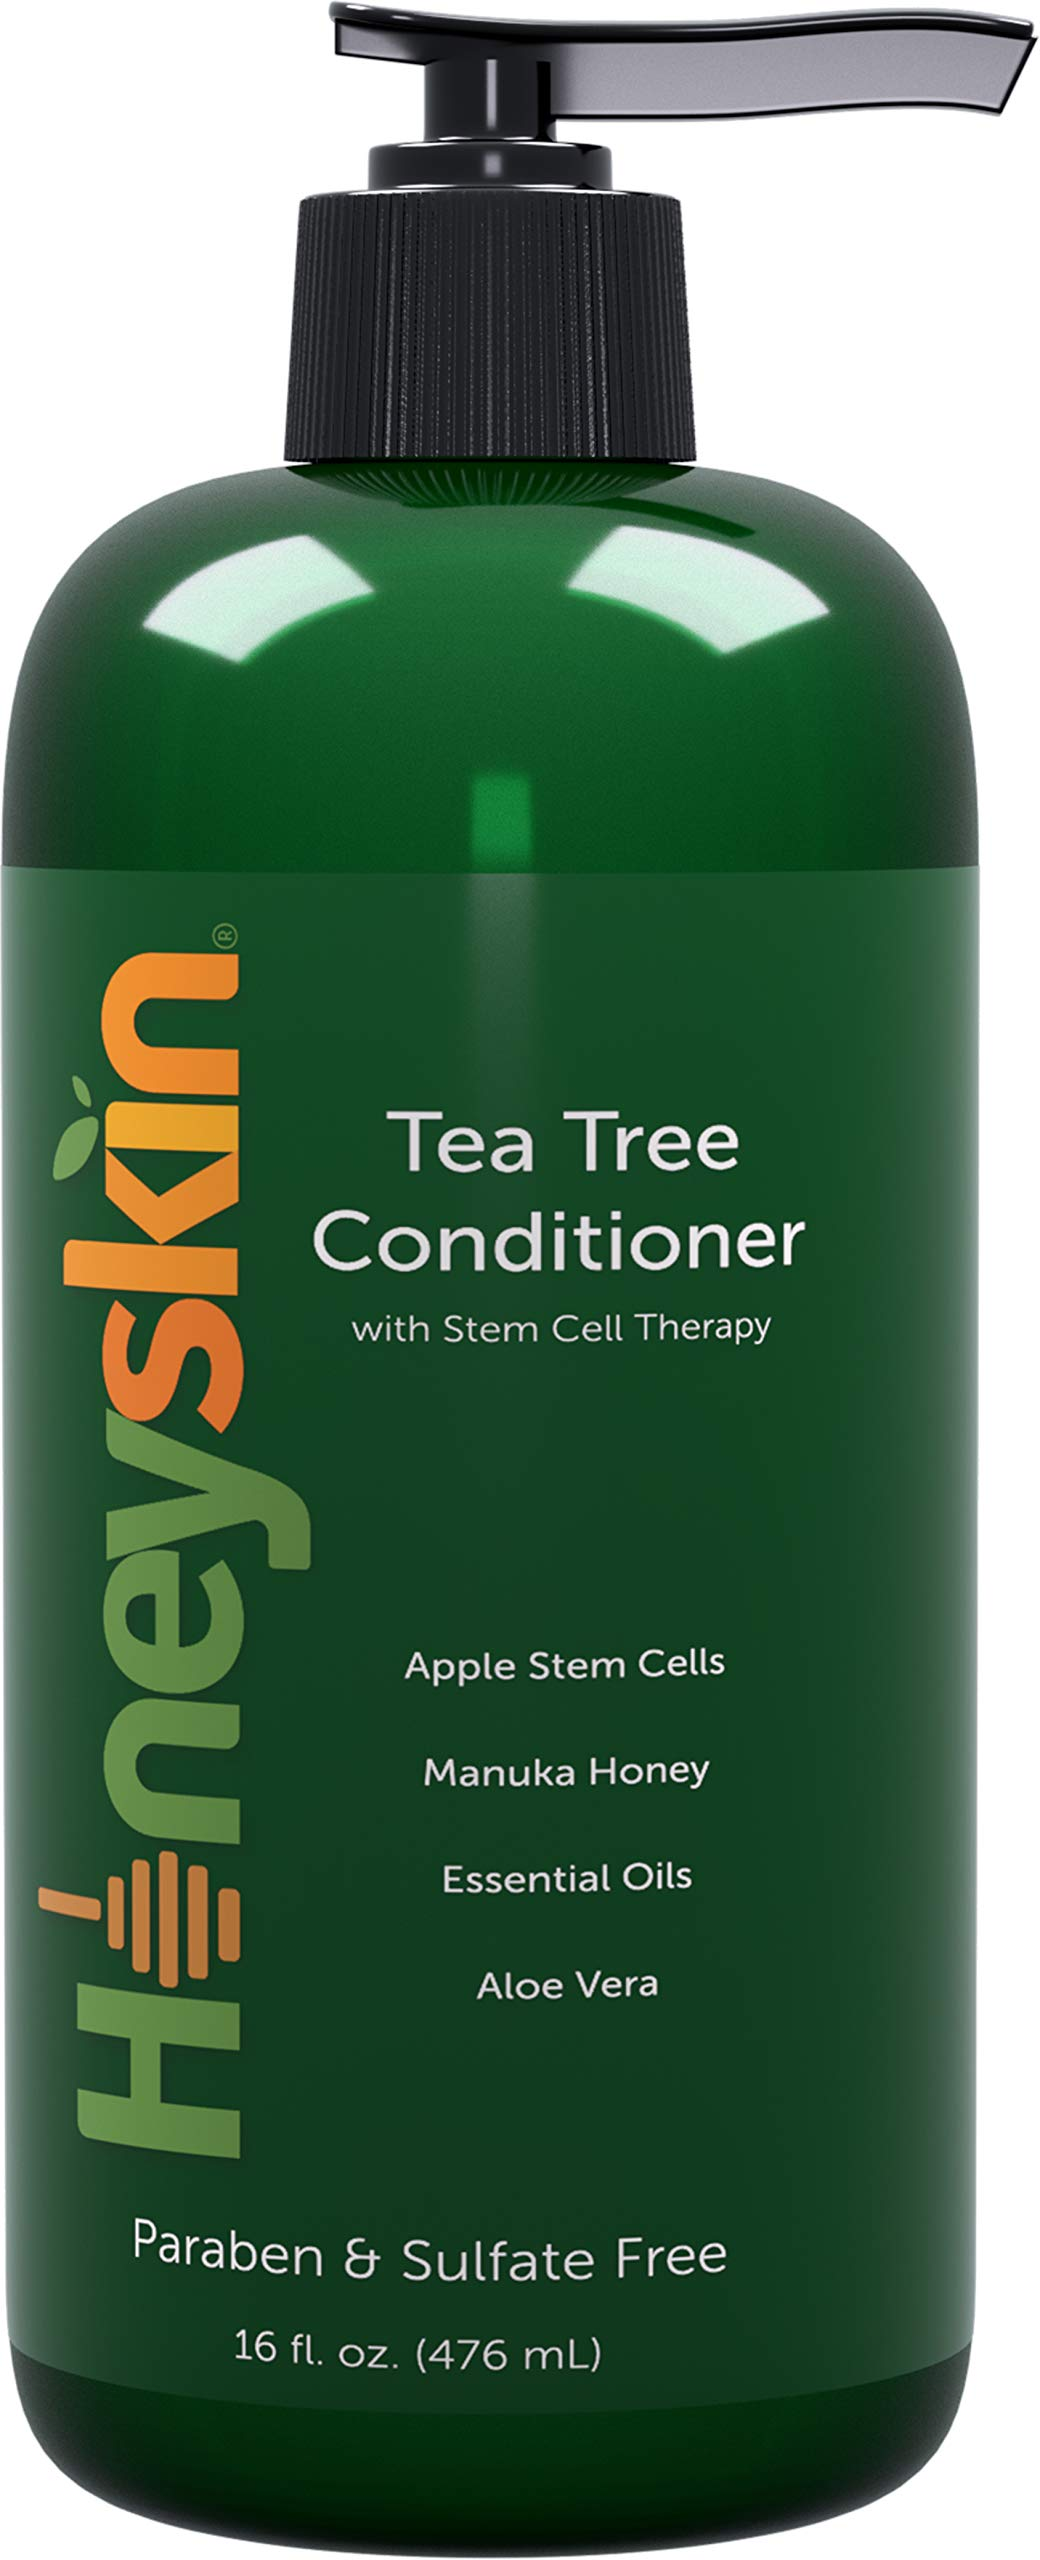 Organic Tea Tree Oil Conditioner - Hydrating Conditioner for Dandruff Hair Loss Itchy and Dry Damaged Scalp Treatment - Paraben and Sulfate Free - with Manuka Honey Coconut Oil and Stem Cells - 16oz